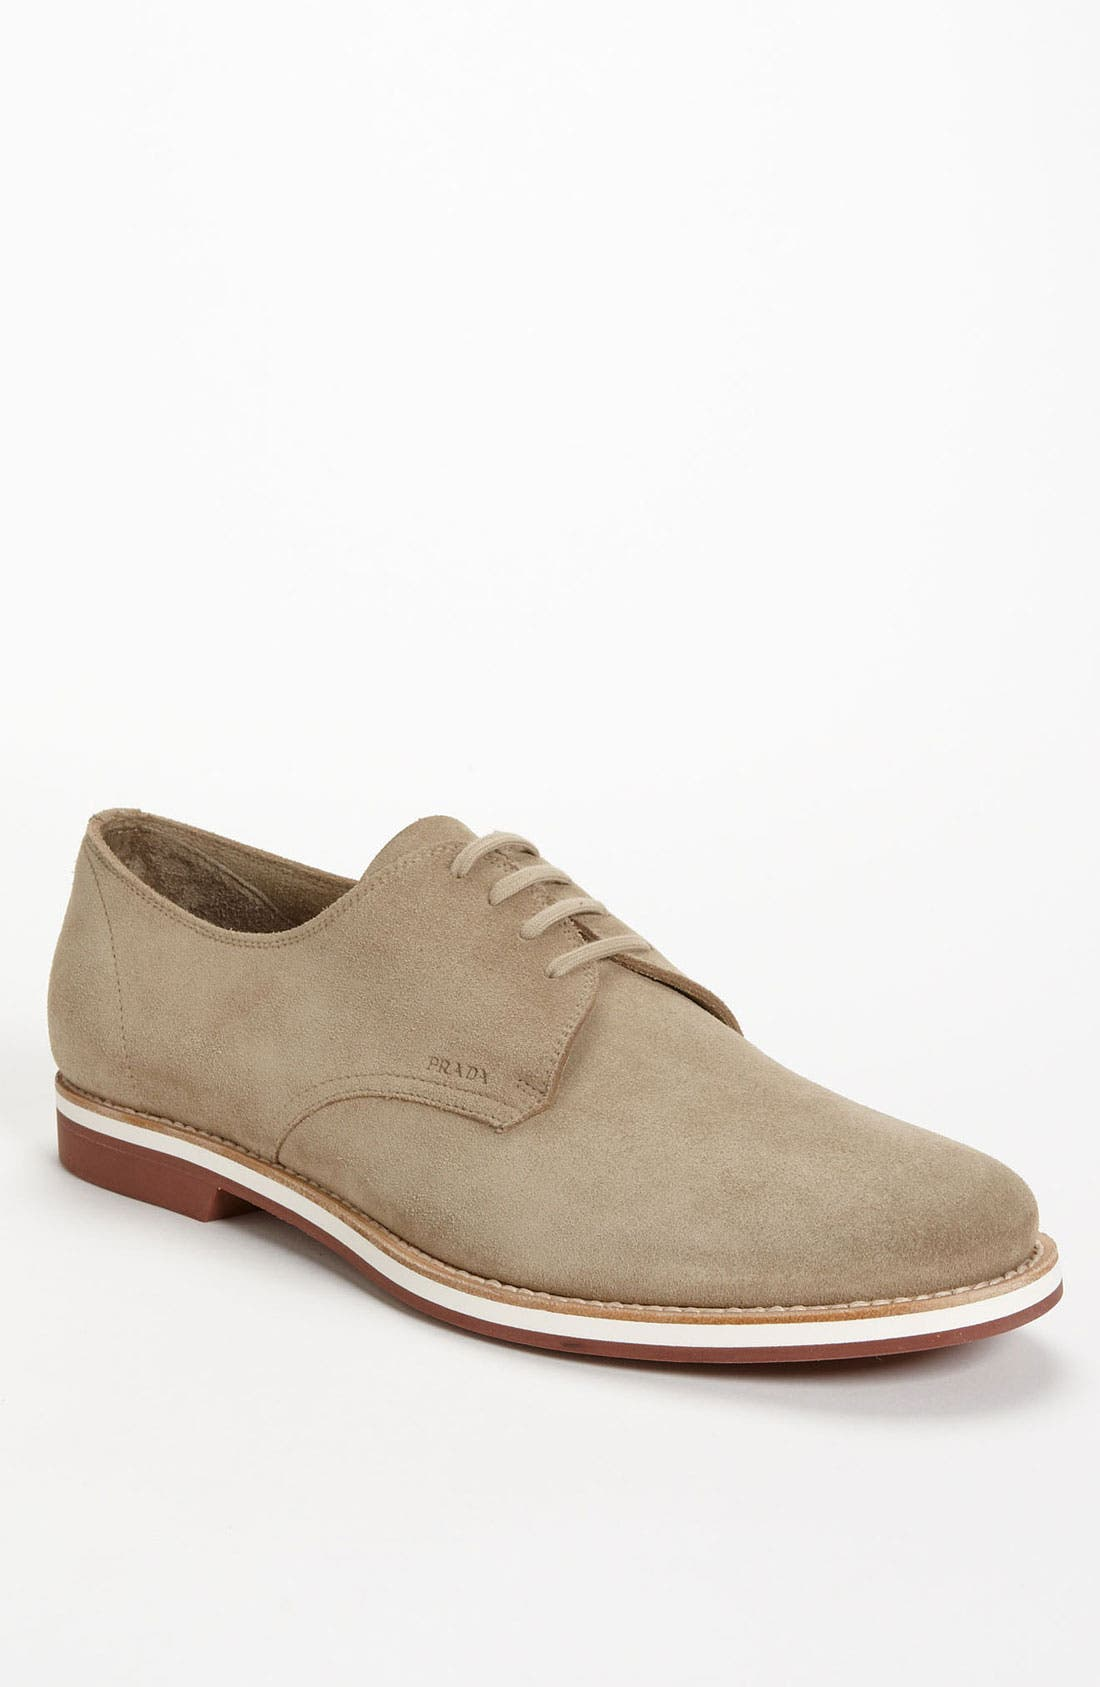 Alternate Image 1 Selected - Prada Suede Buck Shoe